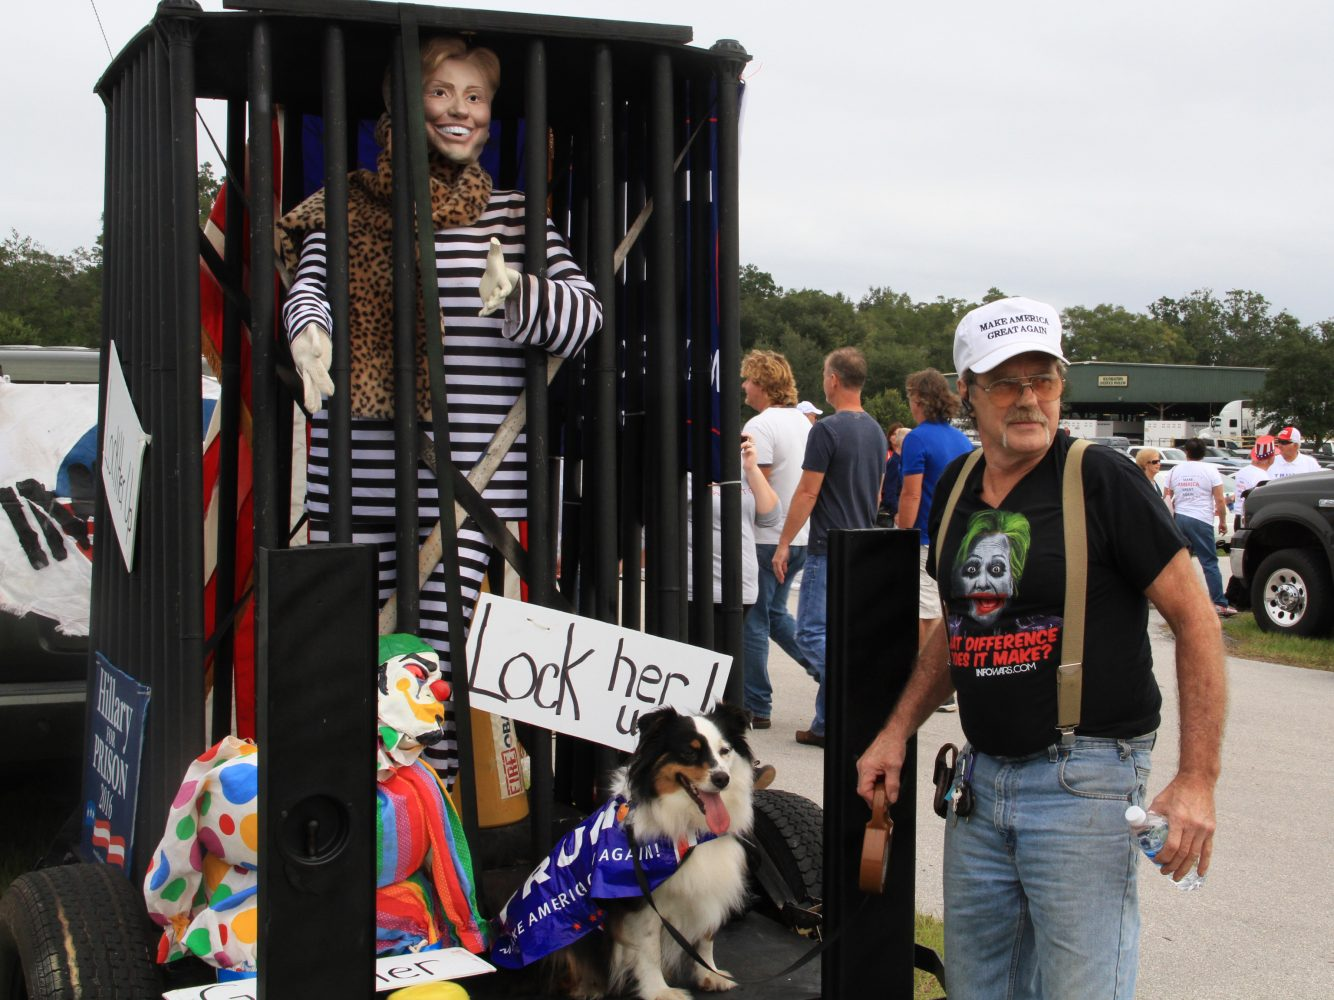 """Bob Gaffney and his dog Dally stand in front of an imprisoned mannequin of Hillary Clinton before Trump's rally Wednesday morning. Throughout the day, chants of """"Lock her up!"""" were audible from the people waiting in line, and from audience members during the rally. Trump also reiterated his plan to appoint a special prosecutor to investigate the Clintons after he is elected president, and emphasized the need to investigate the FBI's investigation into Sec. Clinton's email scandal."""